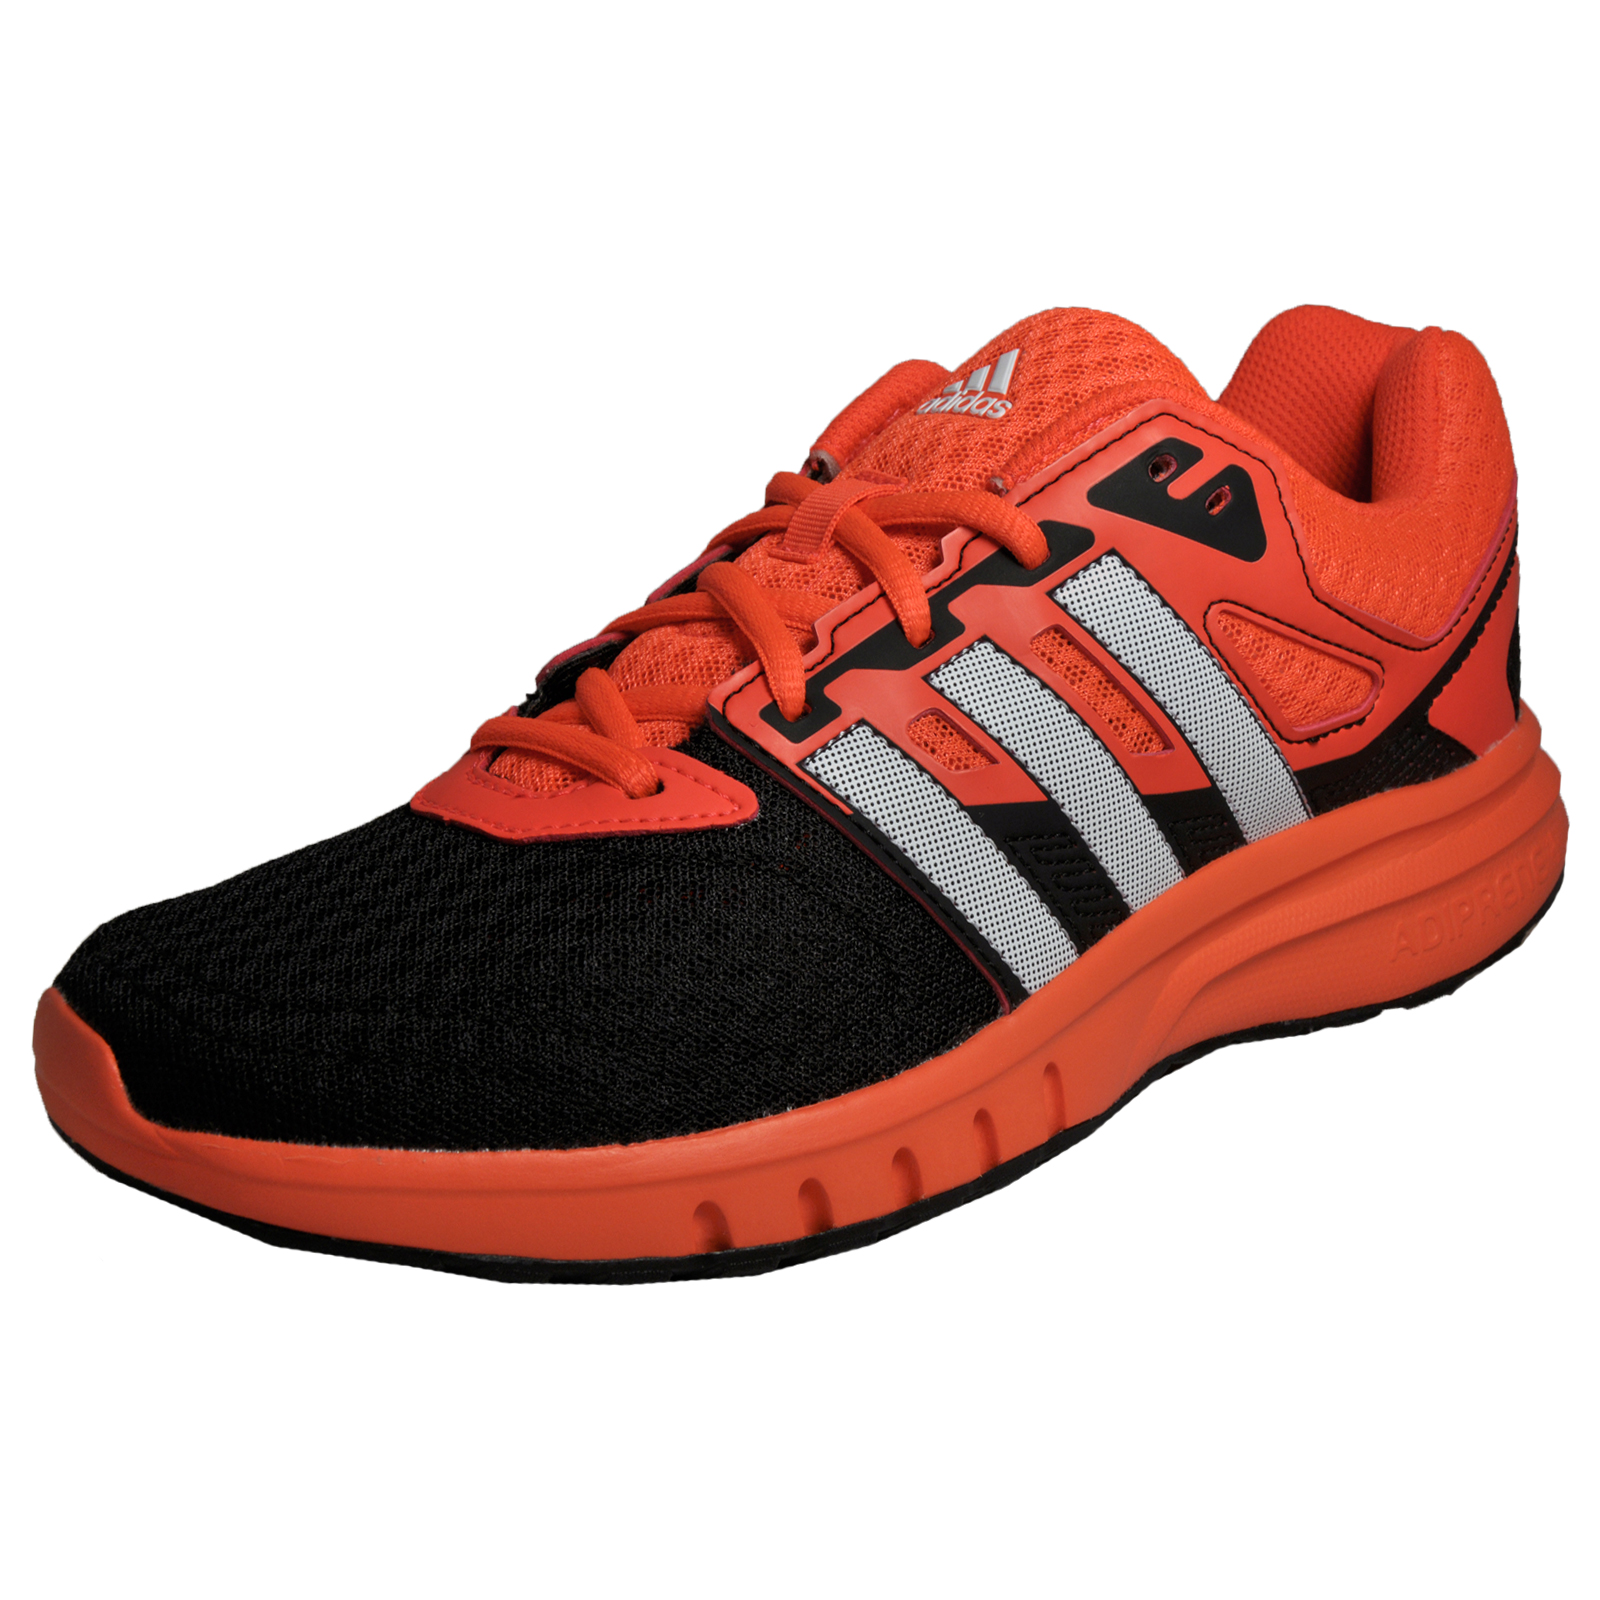 37a46c2955e7 Details about Adidas Galaxy 2 Mens Running Shoes Fitness Gym Workout  Trainers Orange